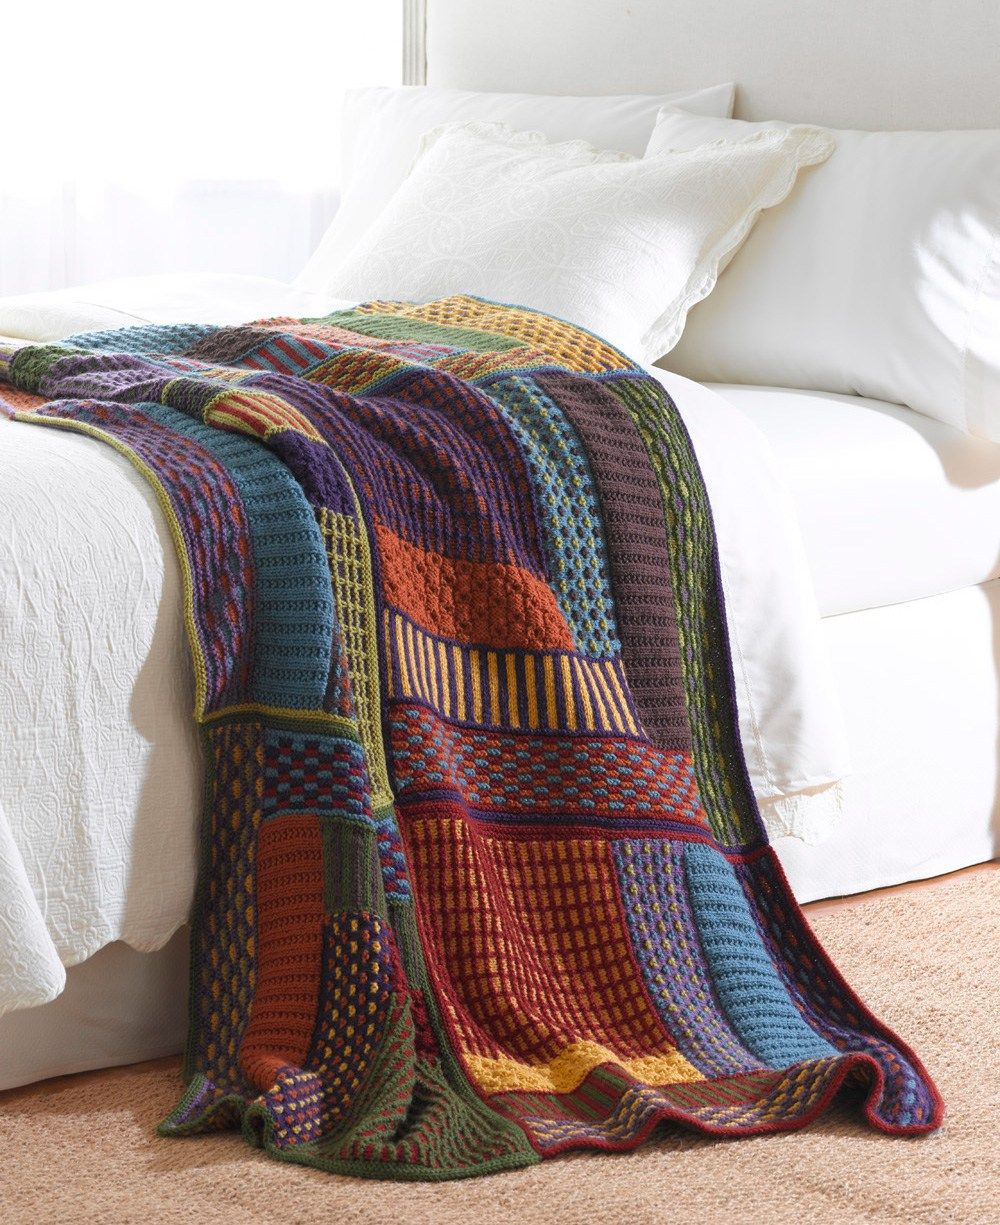 Free knitting pattern for slip stitch sampler afghan and more free knitting pattern for slip stitch sampler afghan and more sampler throw knitting patterns bankloansurffo Image collections